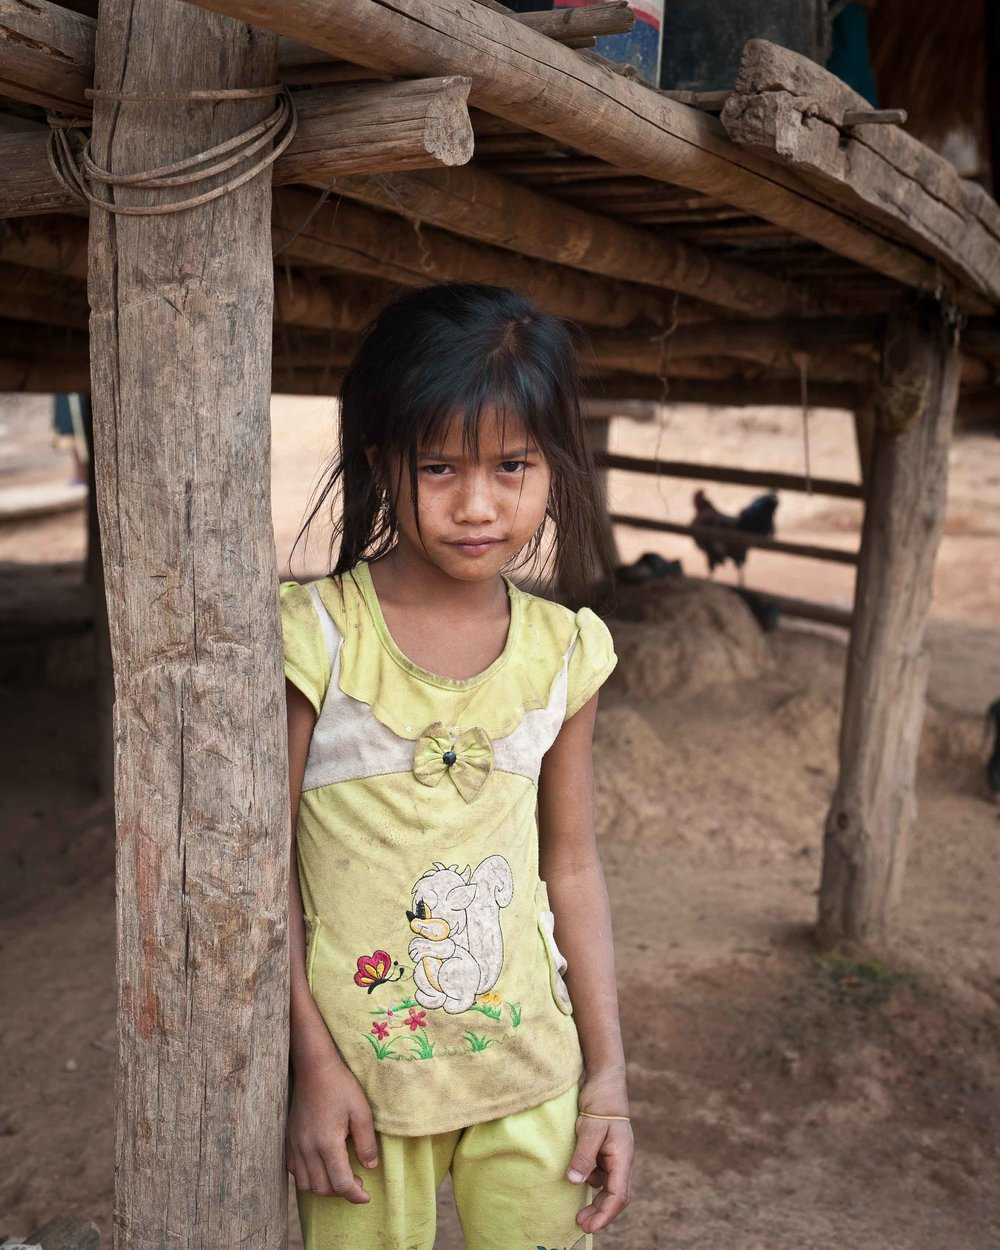 Village girl under family hut, remote Laos